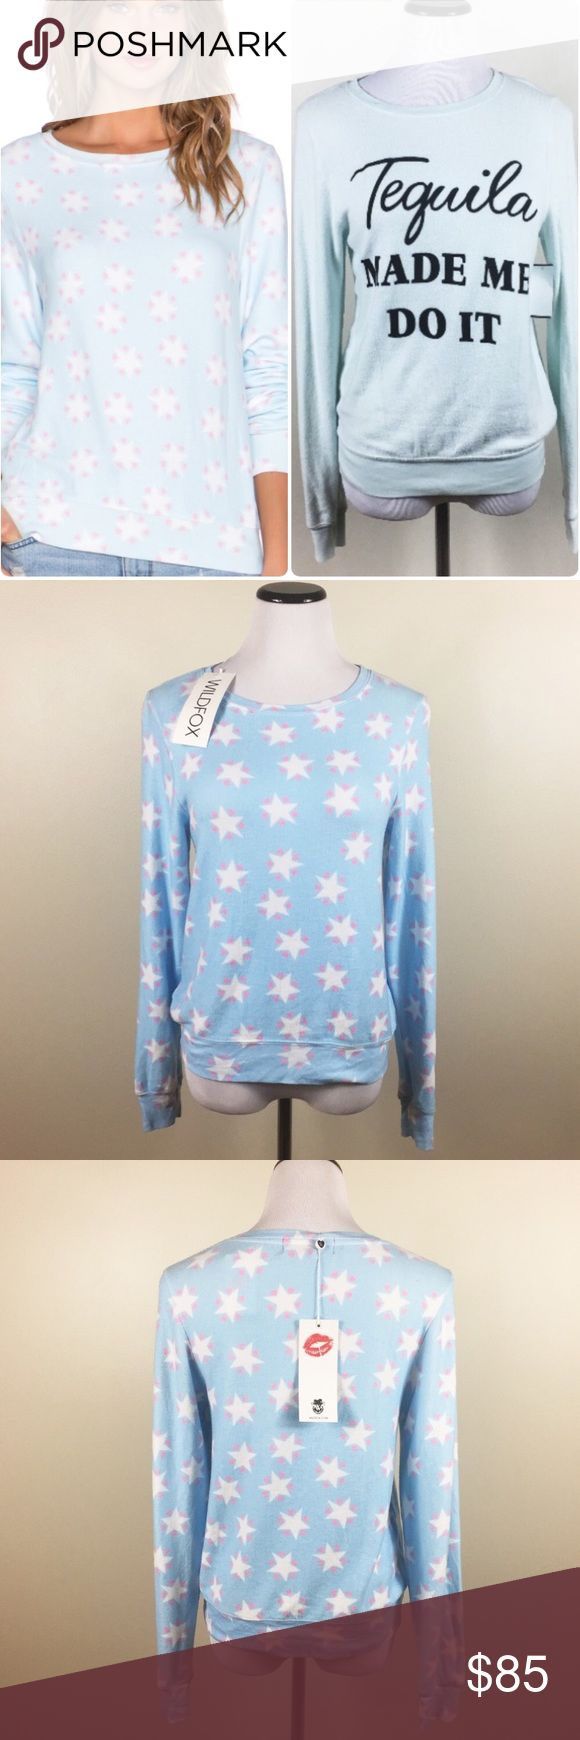 🔥FIRM🔥2 WILDFOX NWT SWEATERS BUNDLE 🔥FIRM🔥 2 WILDFOX NWT SWEATERS in size XS. Brand new with tags, stars sweater with wildfox logo tags, tequila made me do it sweater with store tag. Brand new, never worn, buttery soft! Colors true to zoom pics. 100% authentic. The price is firm, no offers please ❌🚫 Wildfox Sweaters